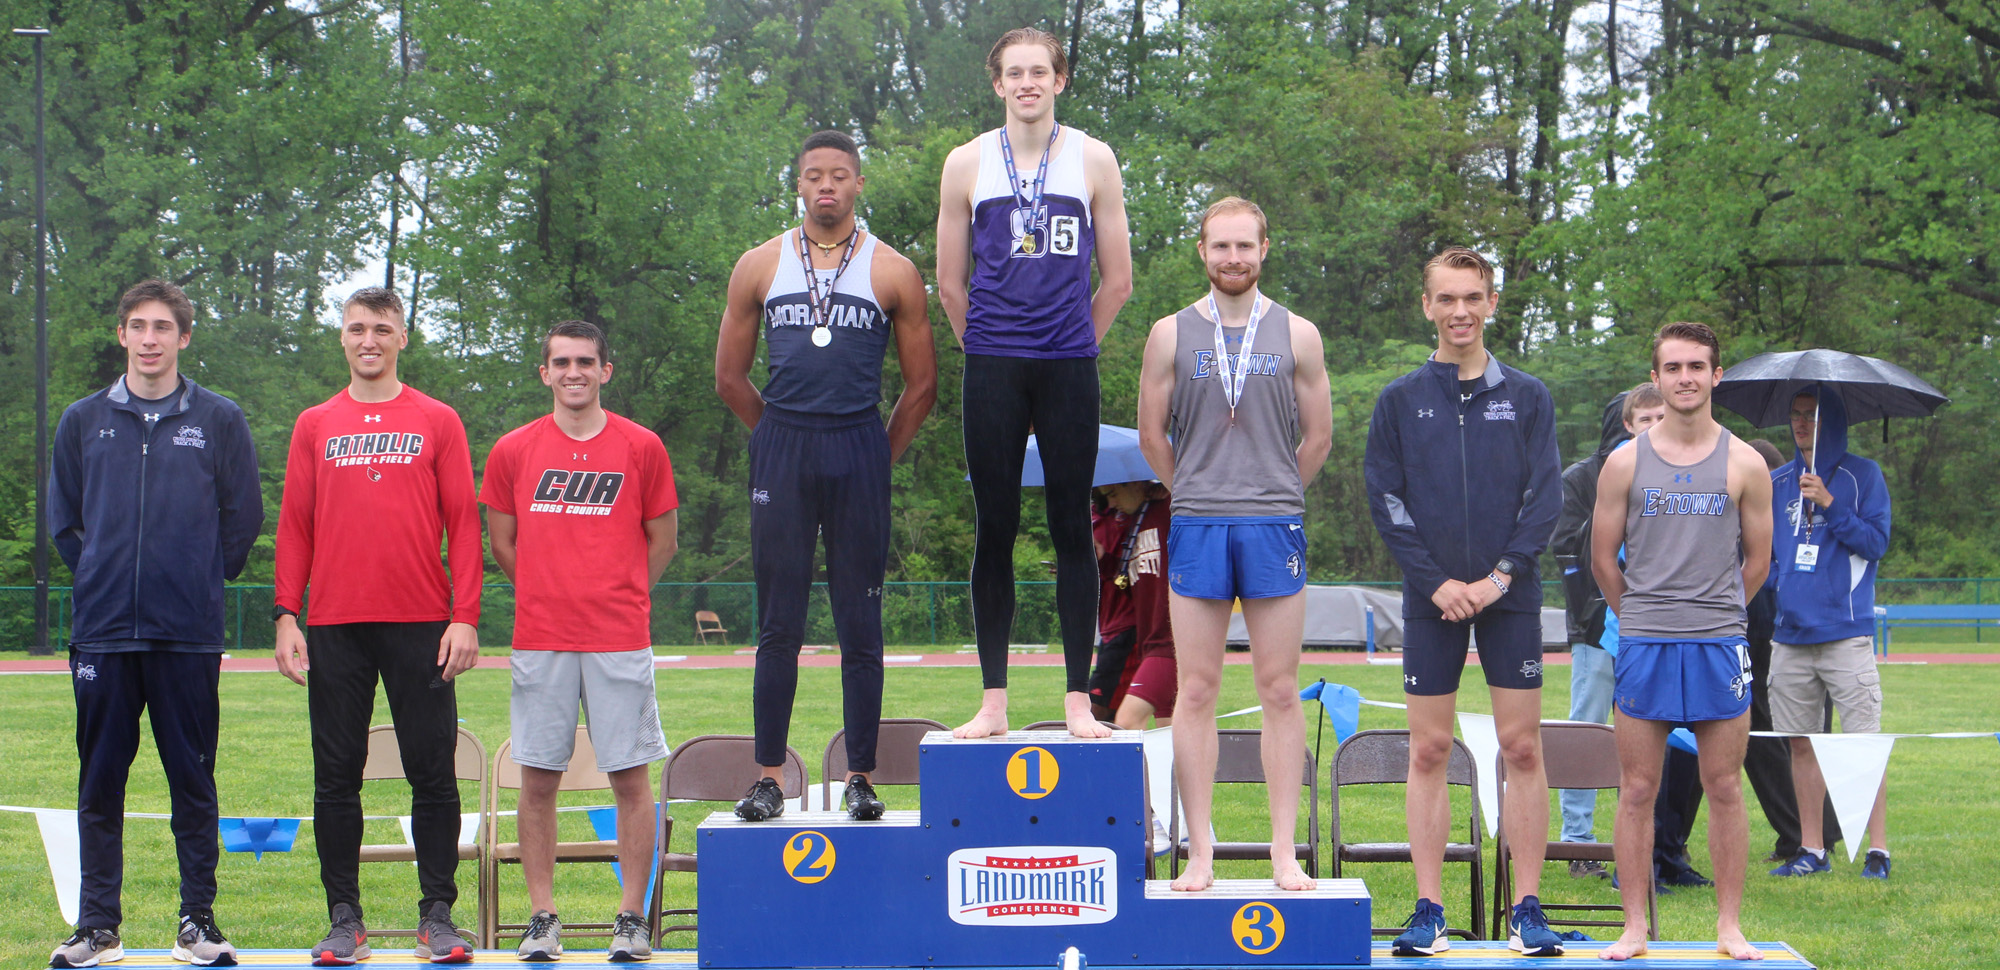 Sophomore Matt Kinback won the 800 meter run on Sunday to lead Scranton to a tie for fifth place at the Landmark Conference Championships.